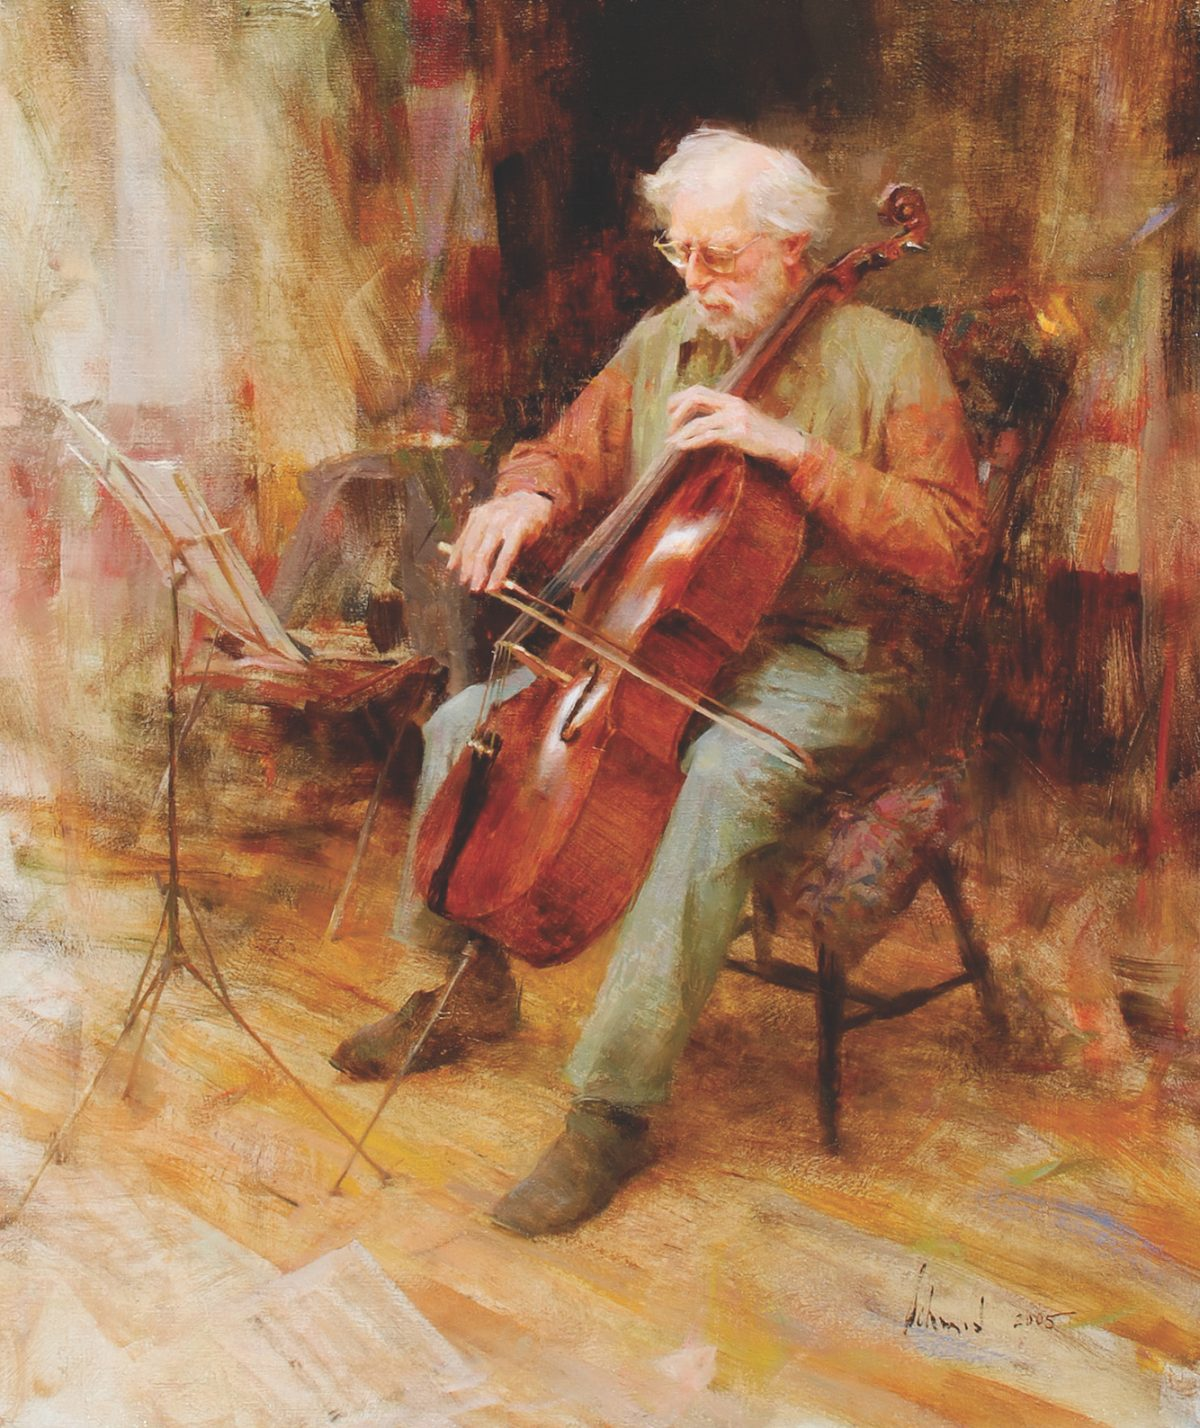 """David Wells, Cellist,"" 2005, by Richard Schmid. Oil on canvas, 26 inches by 22 inches. (Courtesy of Tim Newton)"